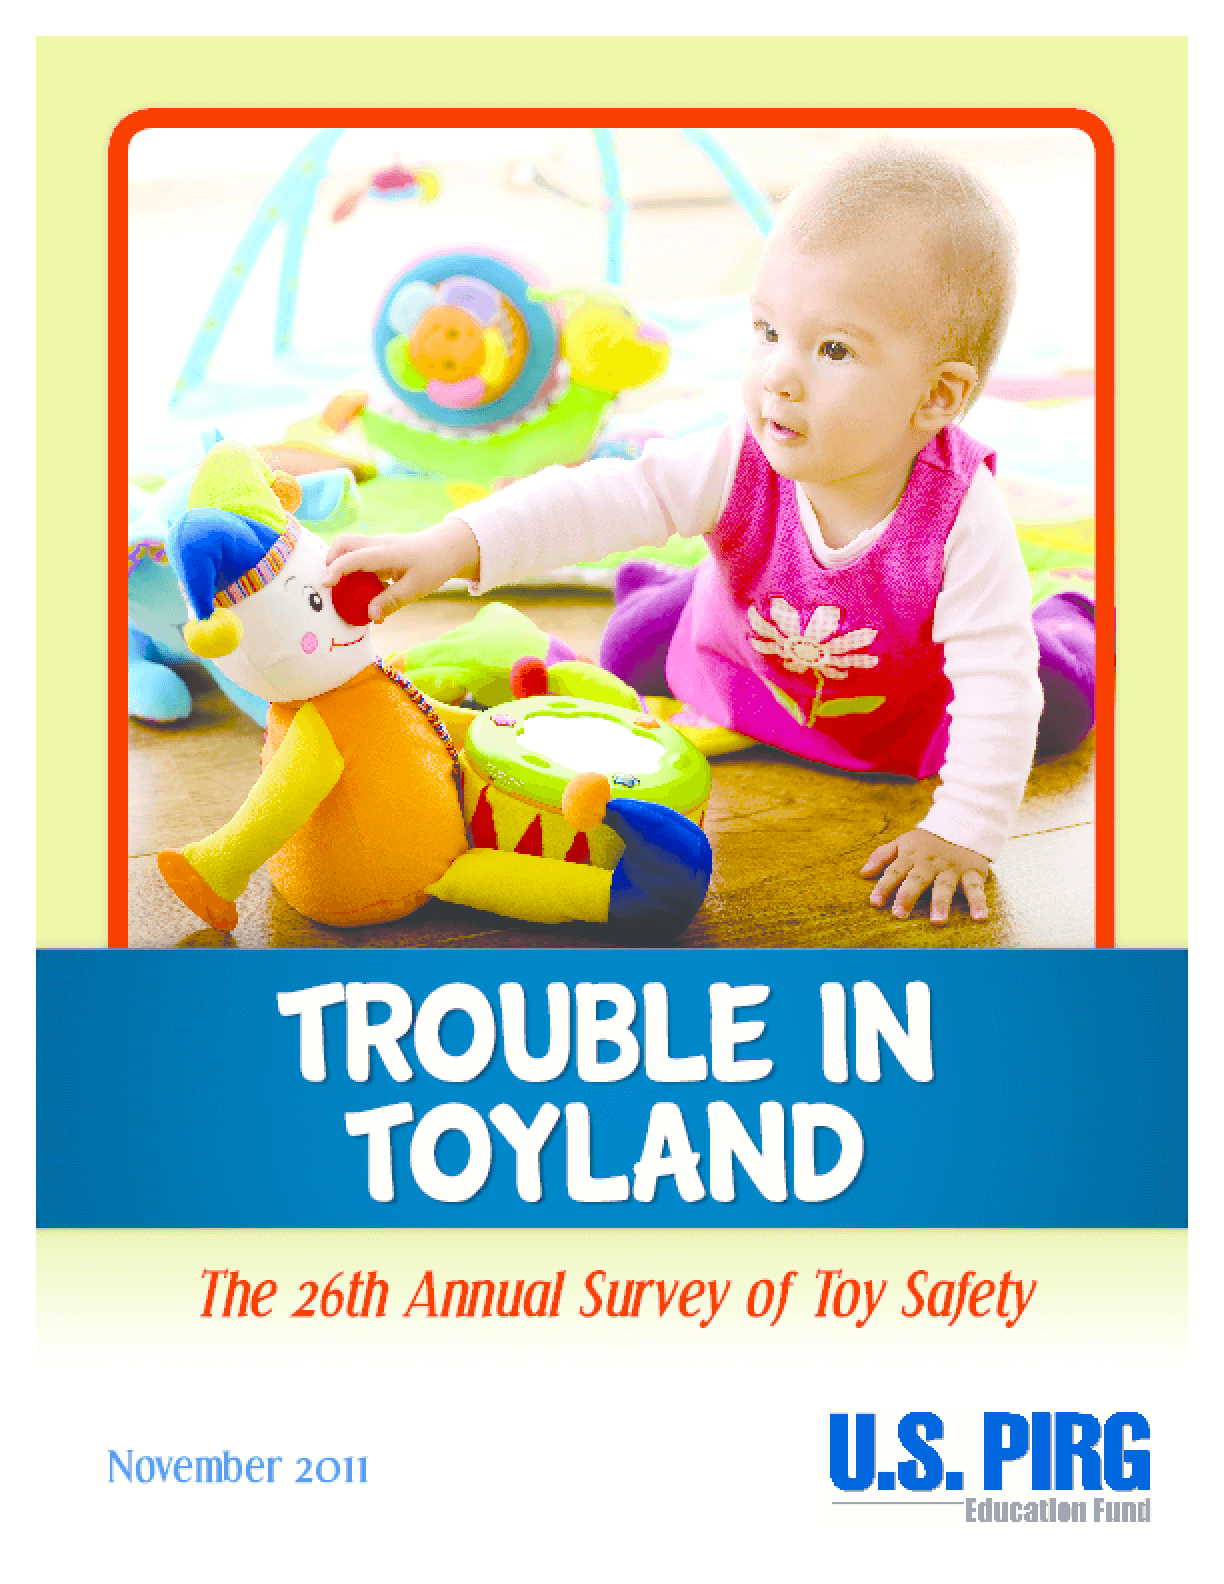 Trouble in Toyland: The 26th Annual Survey of Toy Safety